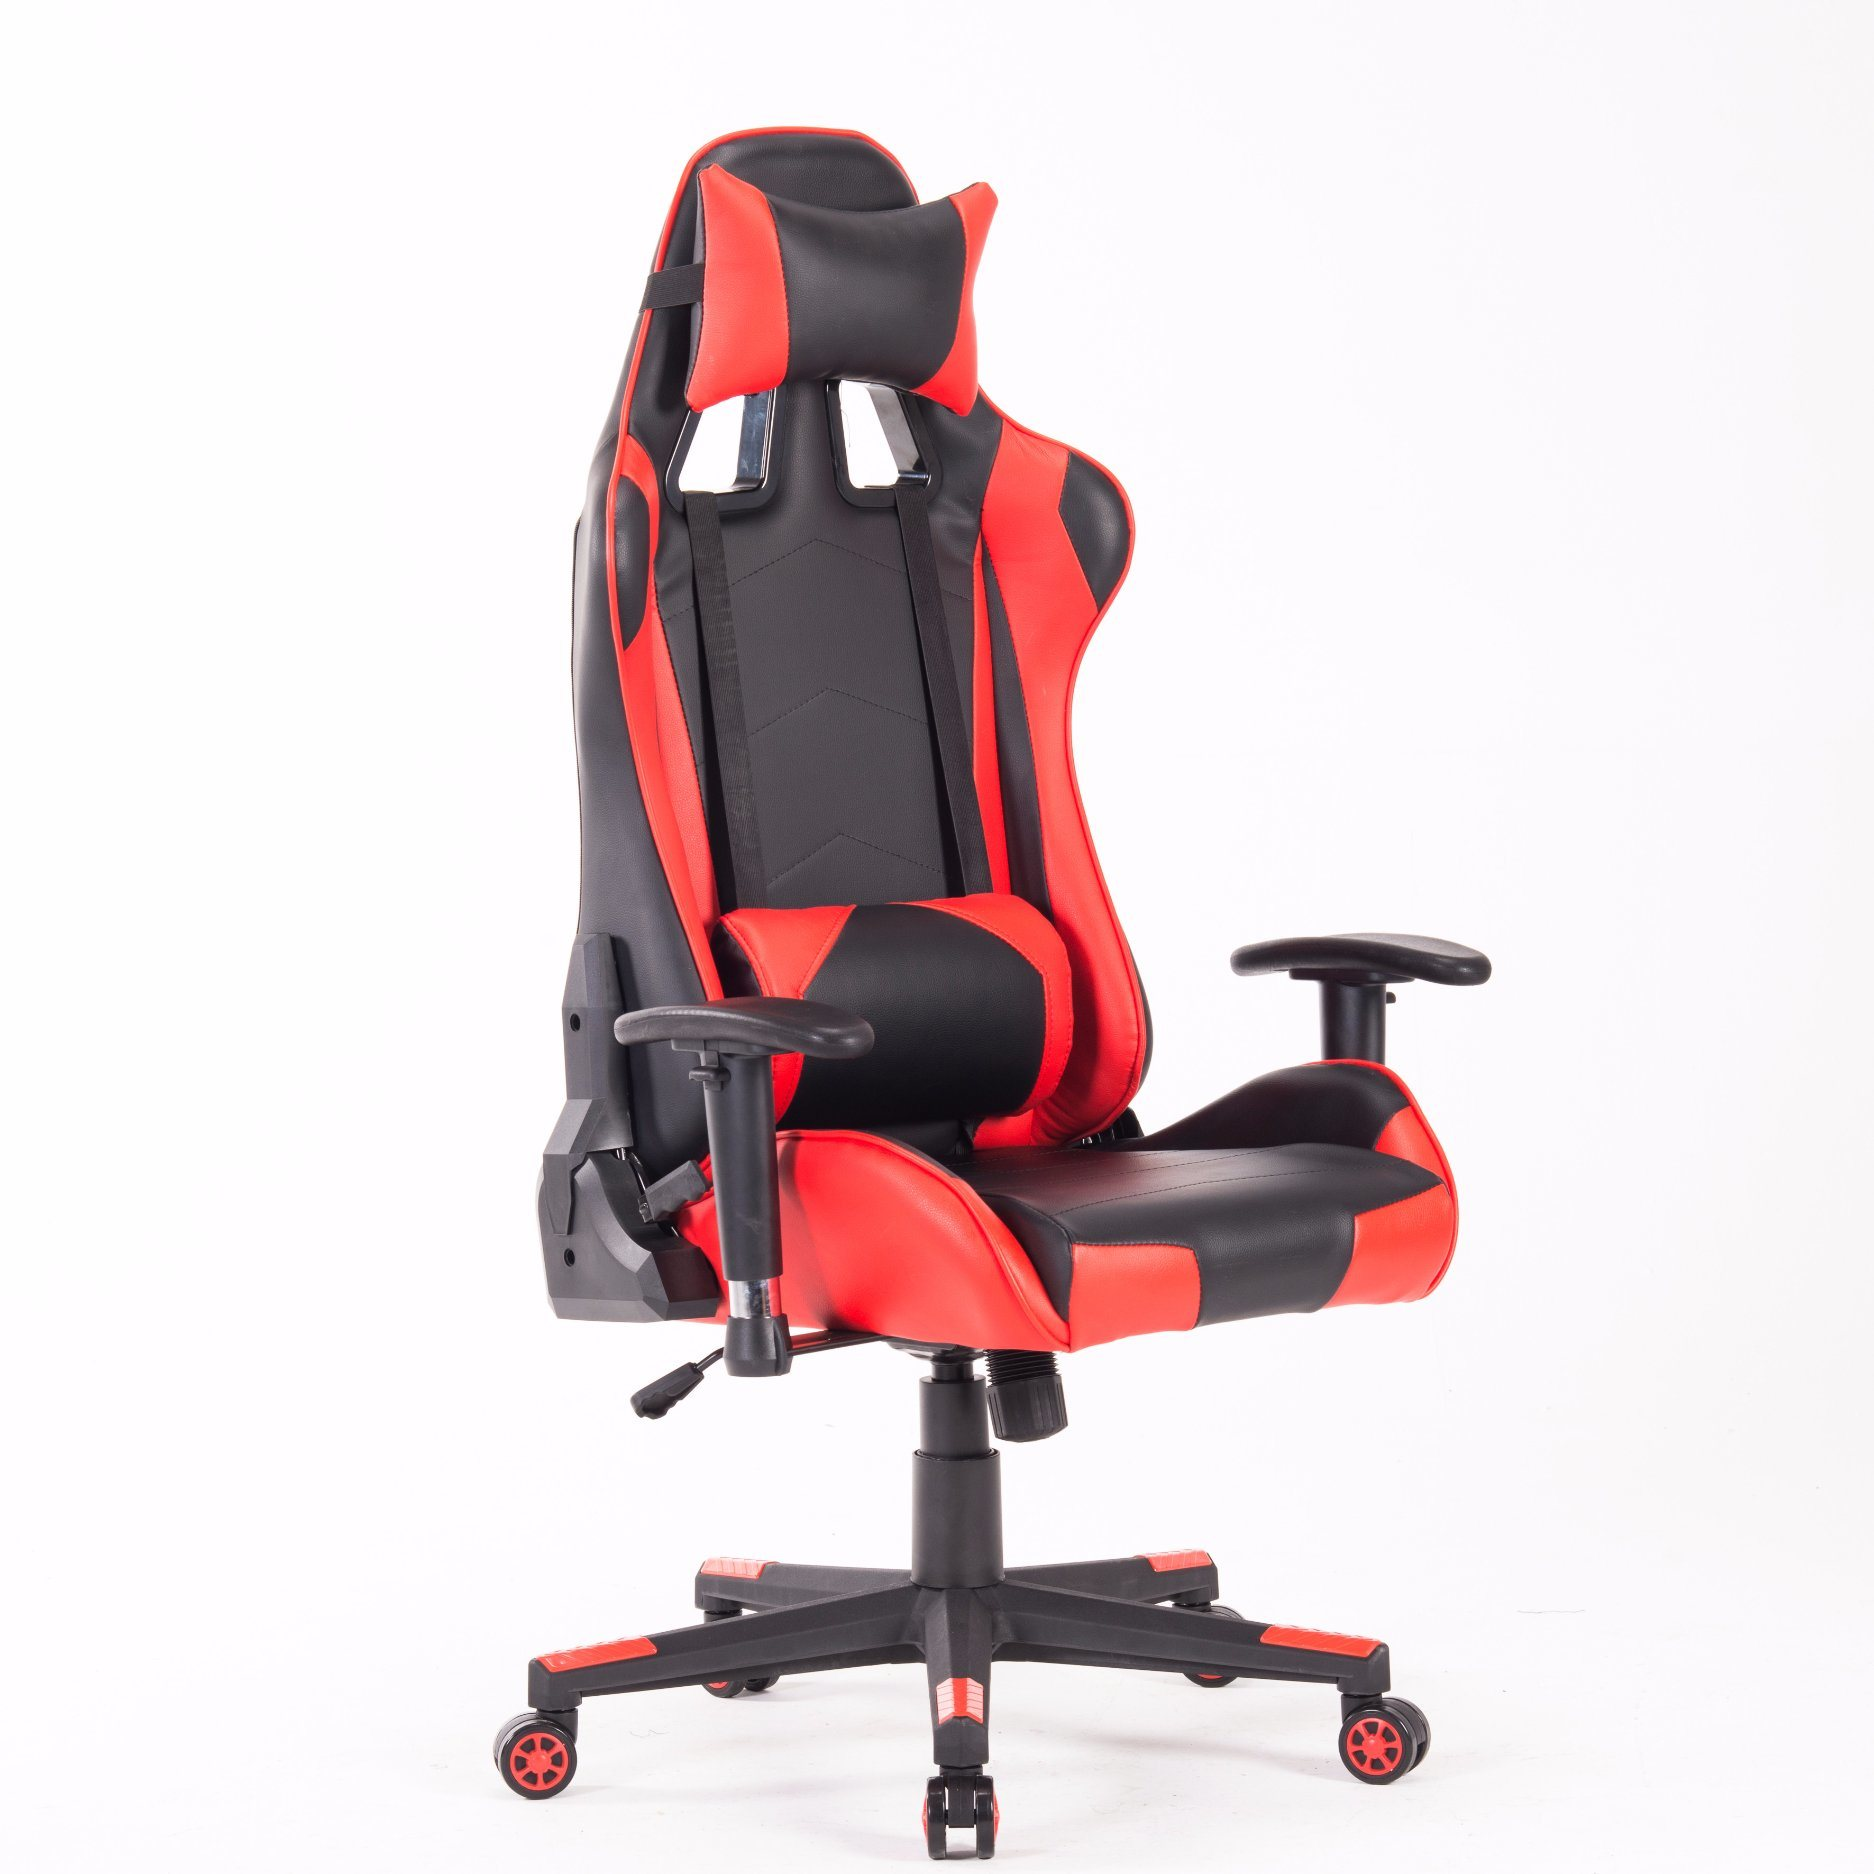 Chair Price Hot Item 2018 Cheap Price Conference Room Gaming Racing Office Chair